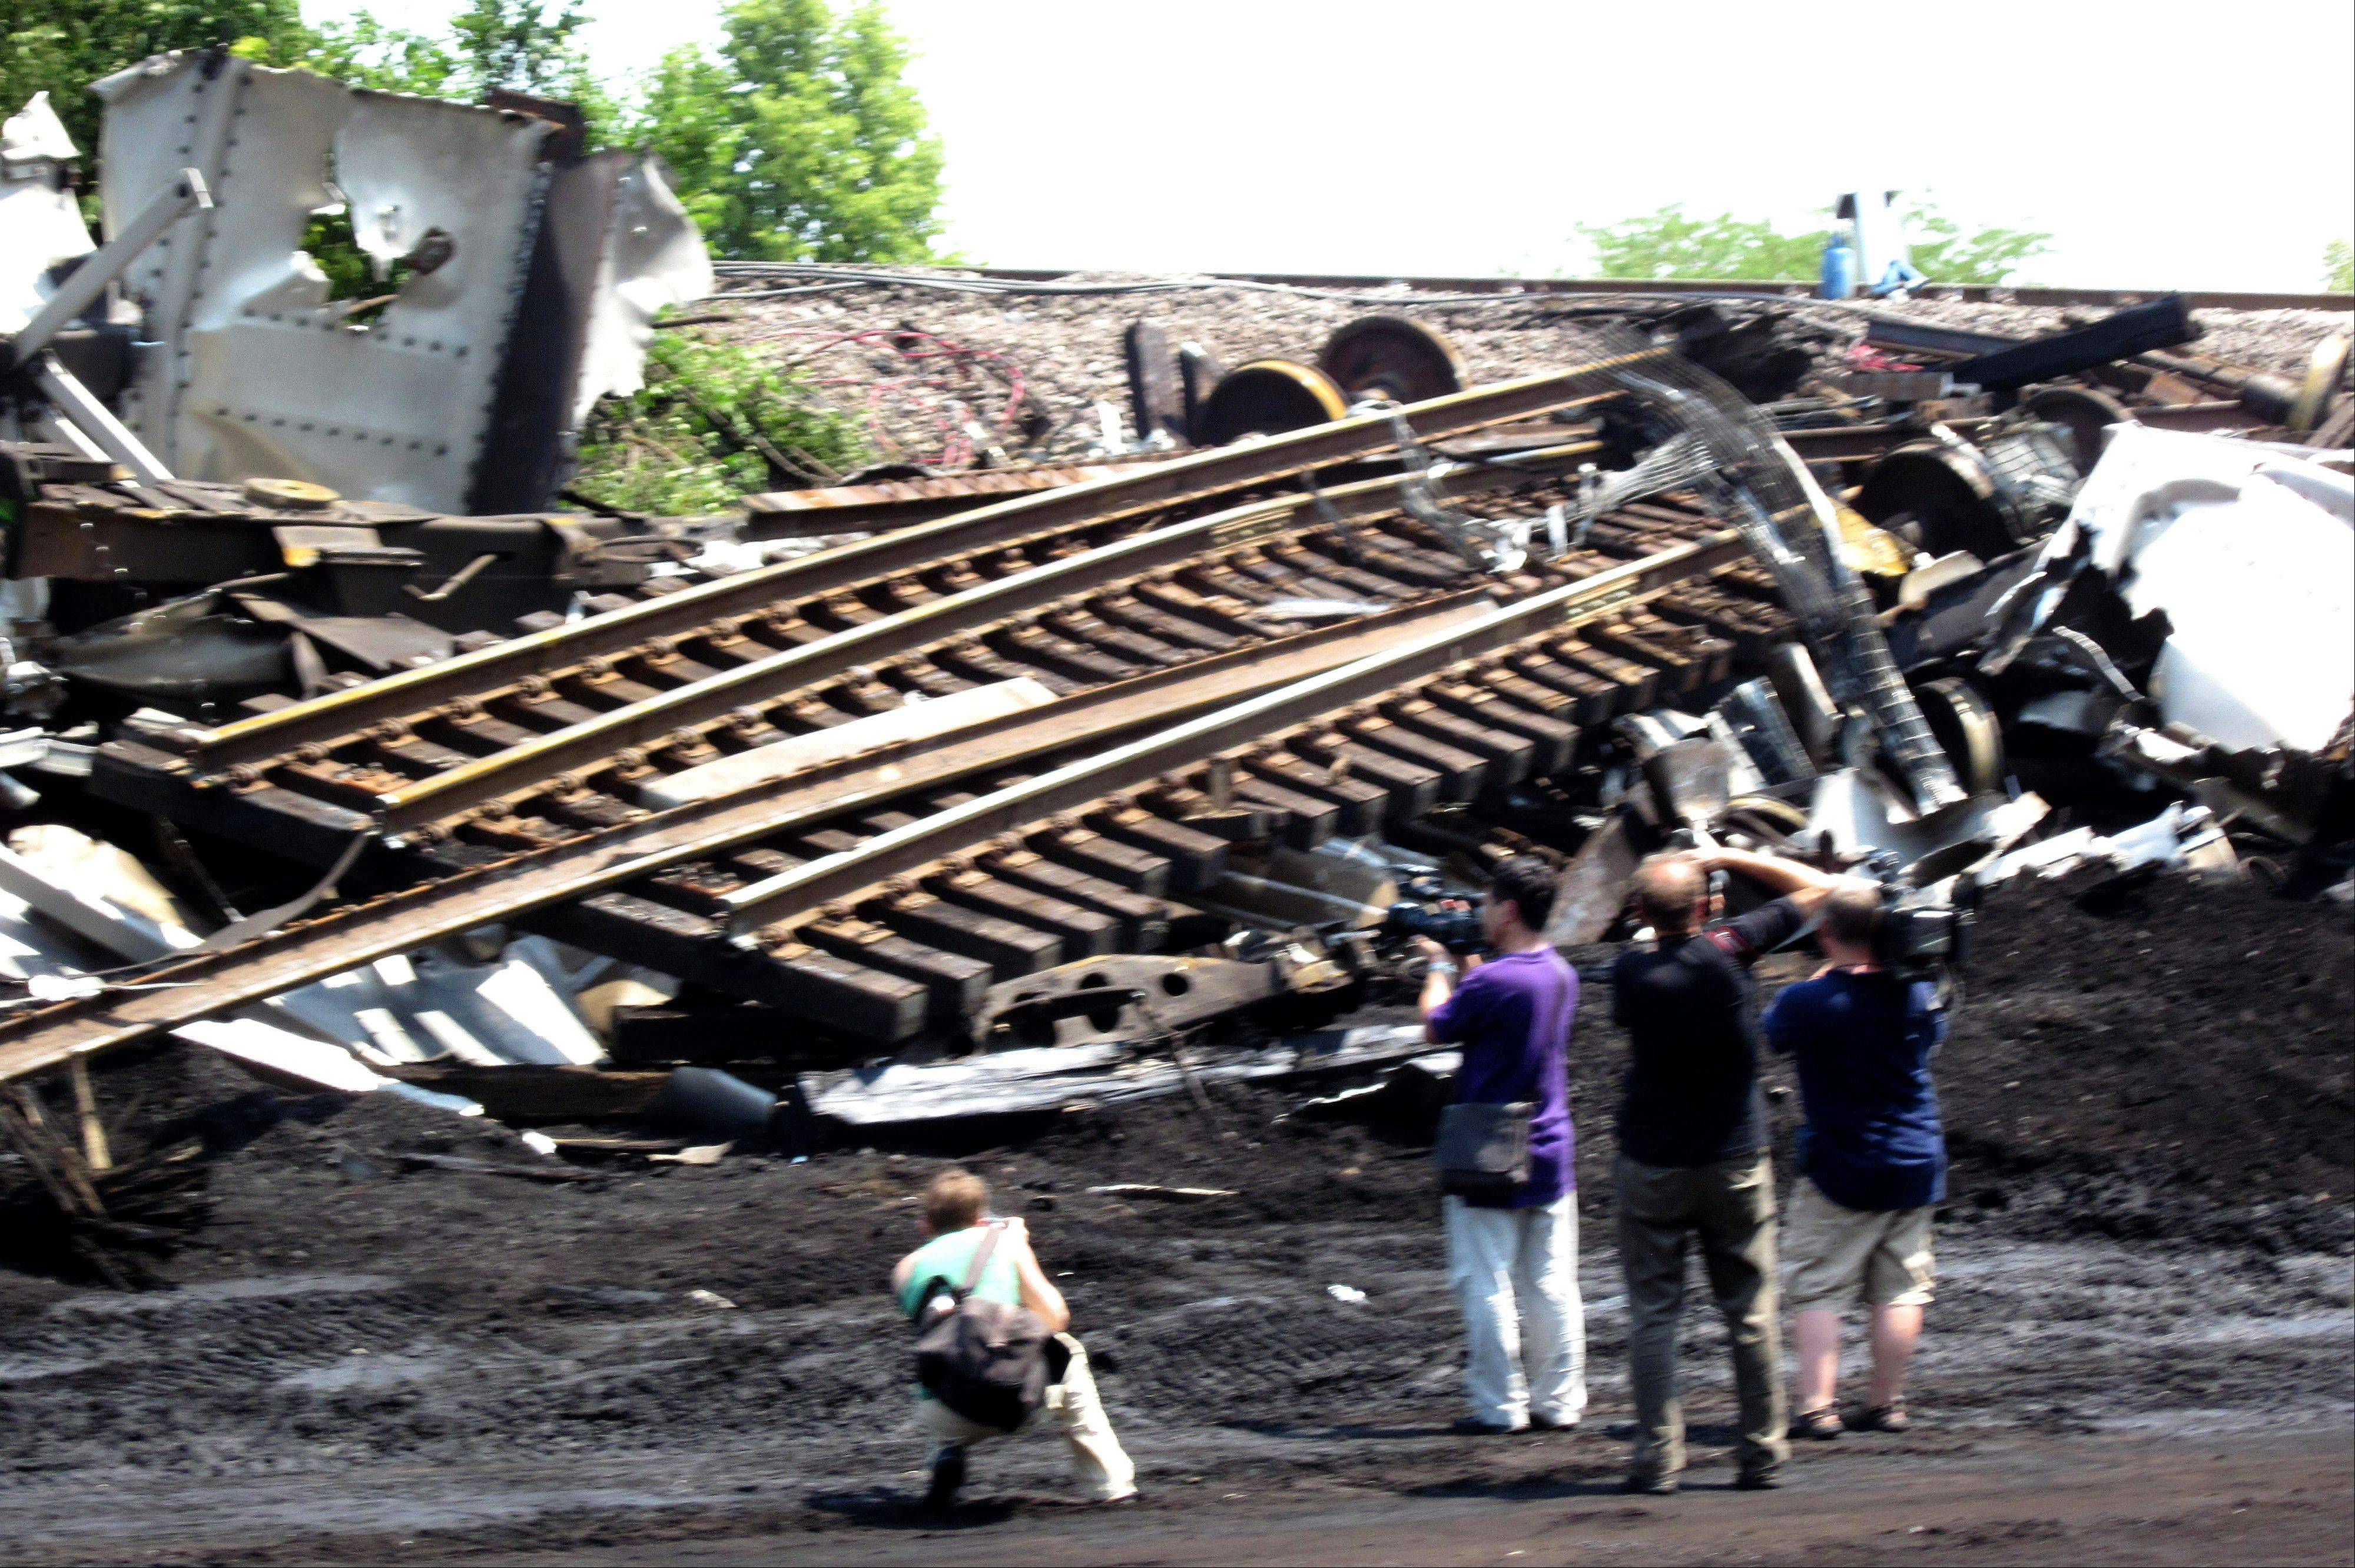 News reporters and photographers record the scene of the train derailment near Glenview.